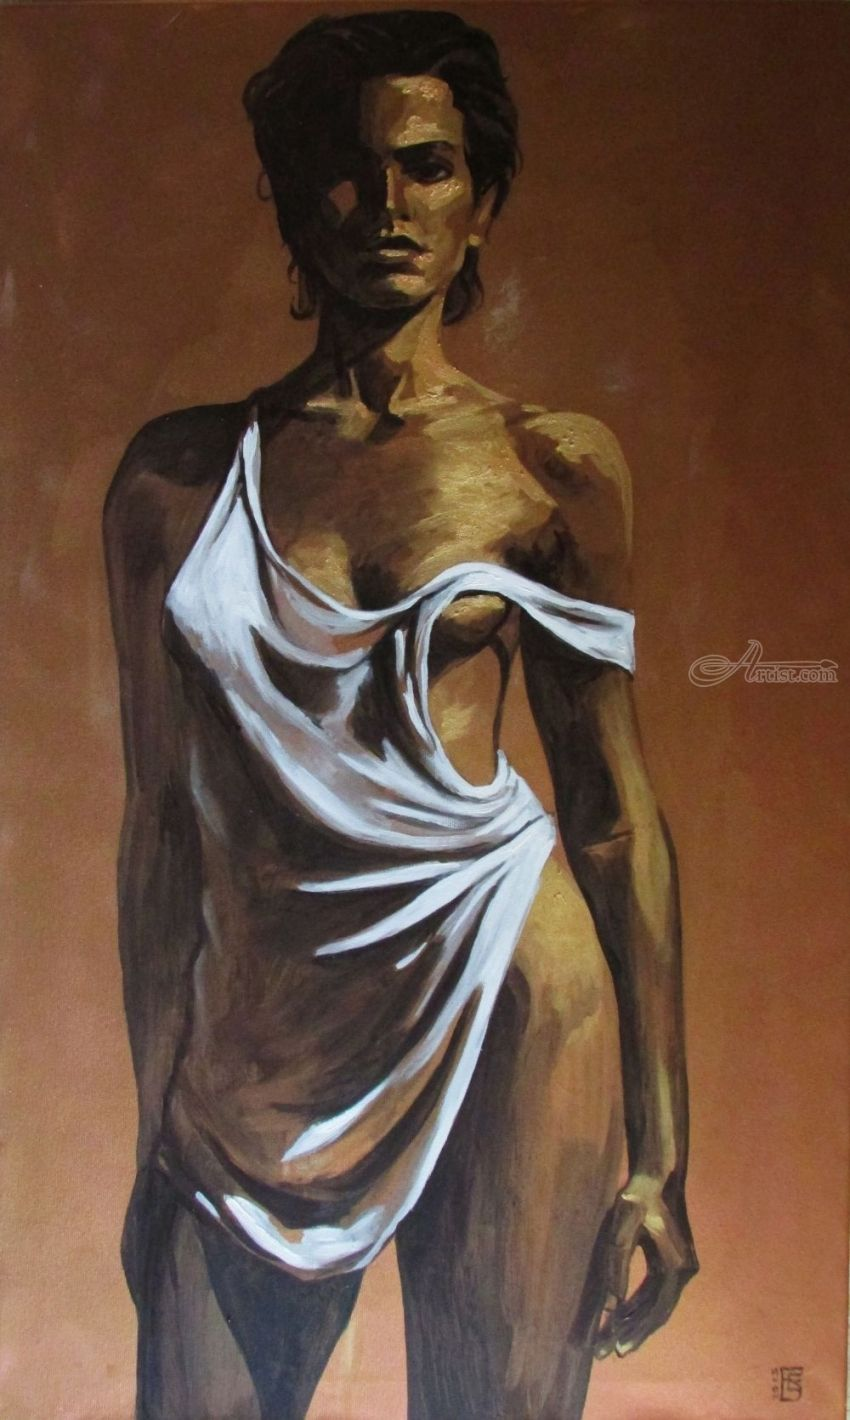 Gold Fever, Paintings, Fine Art,Pop Art,Realism, Erotic,Figurative,Nudes,People, Acrylic,Canvas,Oil, By Kateryna Bortsova